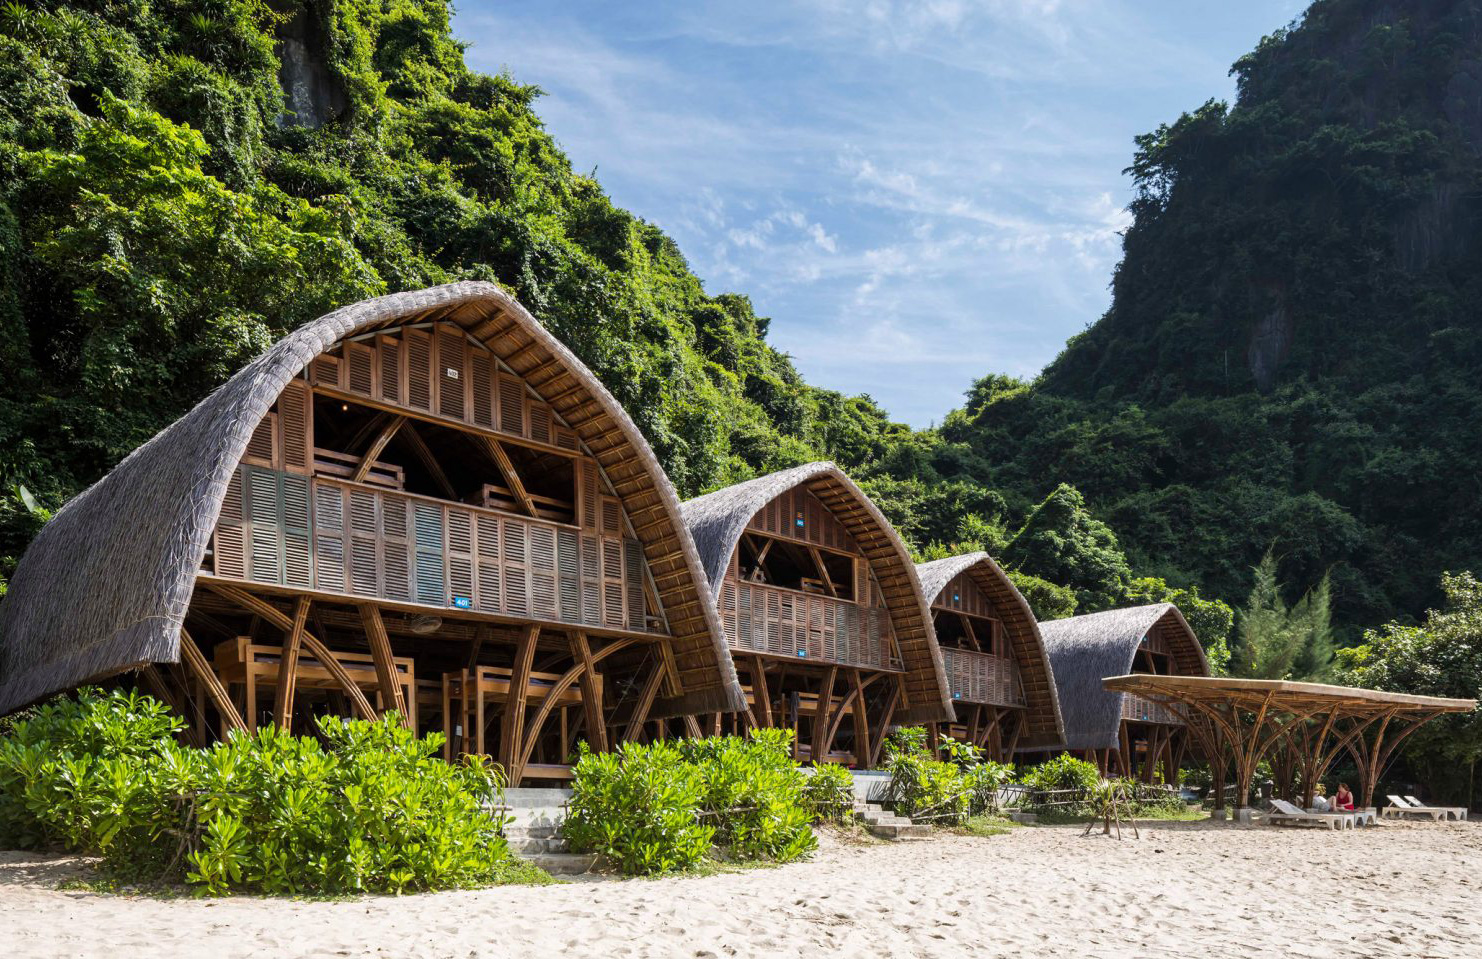 Guests can live out their desert island fantasies